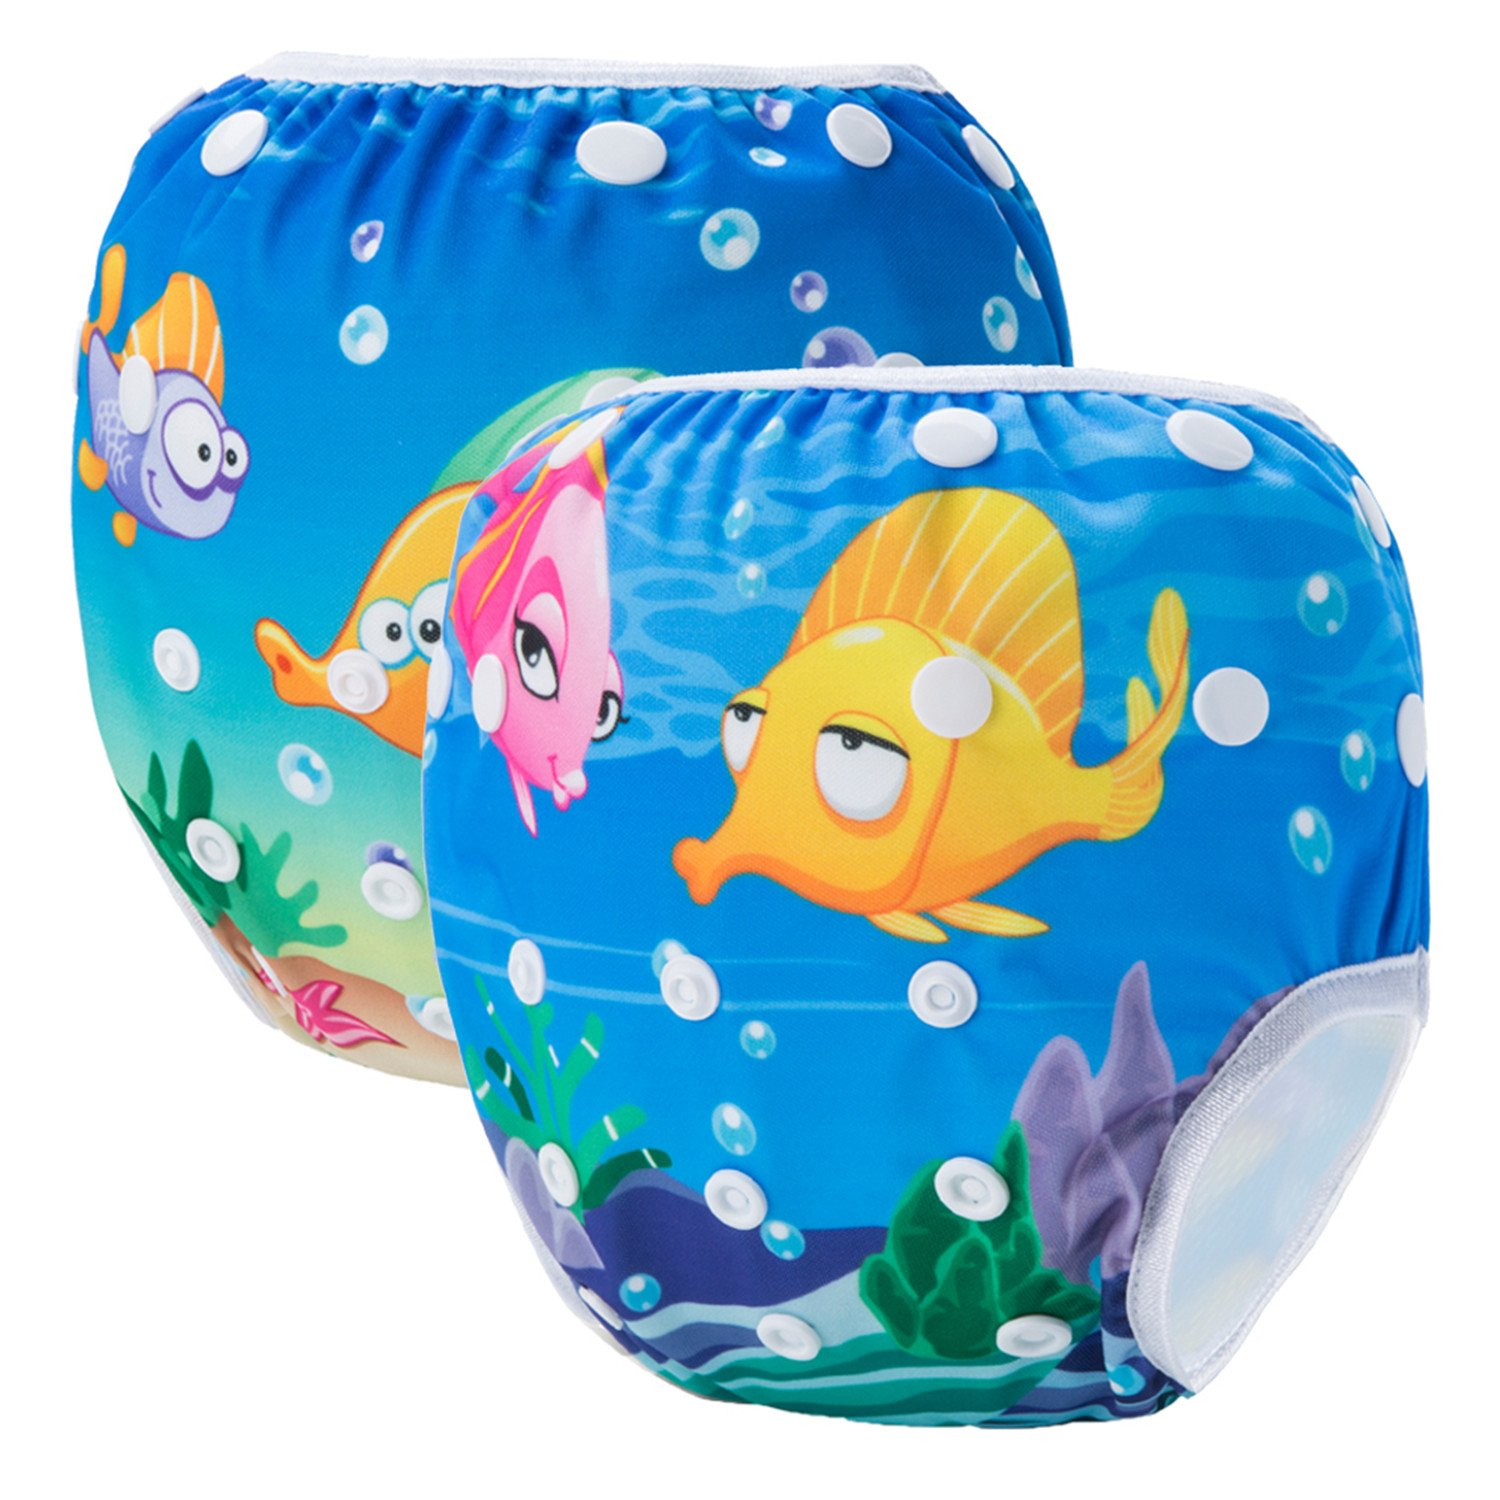 Storeofbaby Reusable Swim Diapers for Unisex Baby Adjustable Swimming Pants 0-3 Years